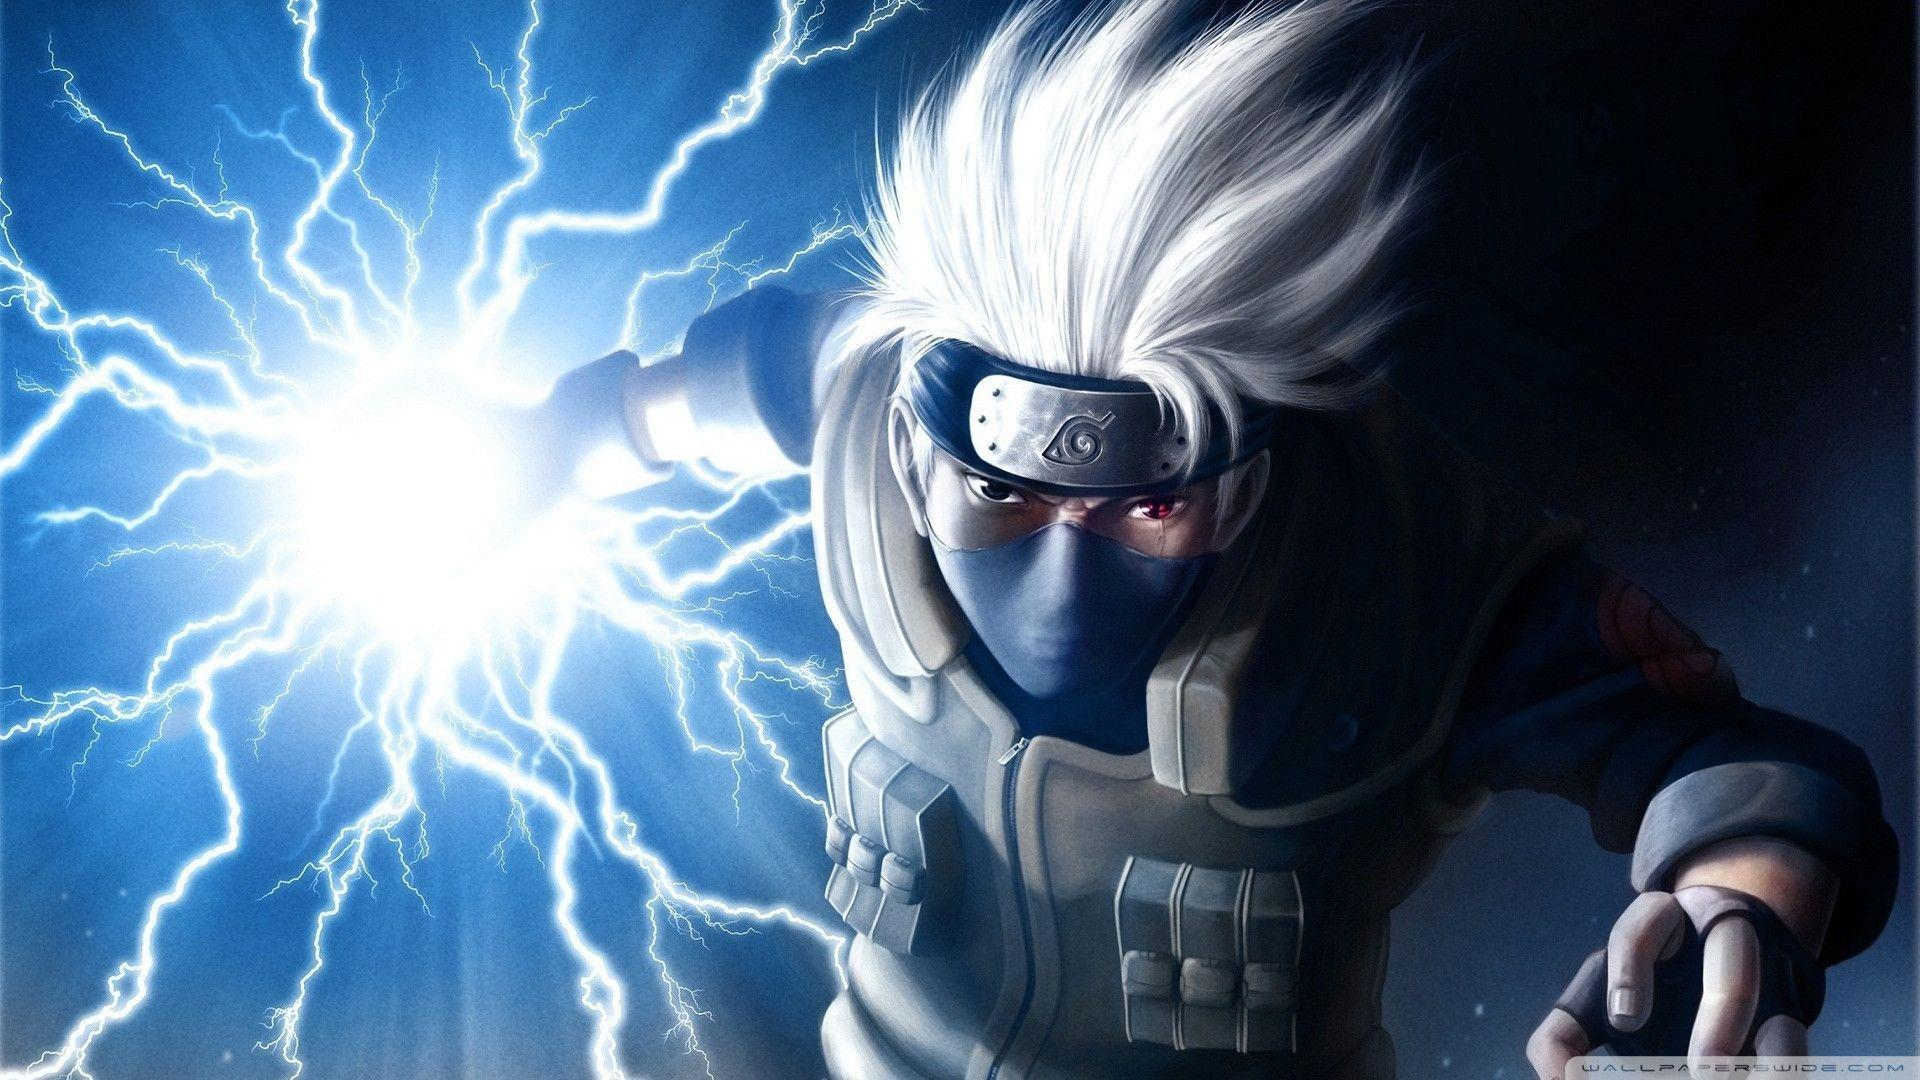 Image For > Naruto Wallpapers Hd 1920x1080